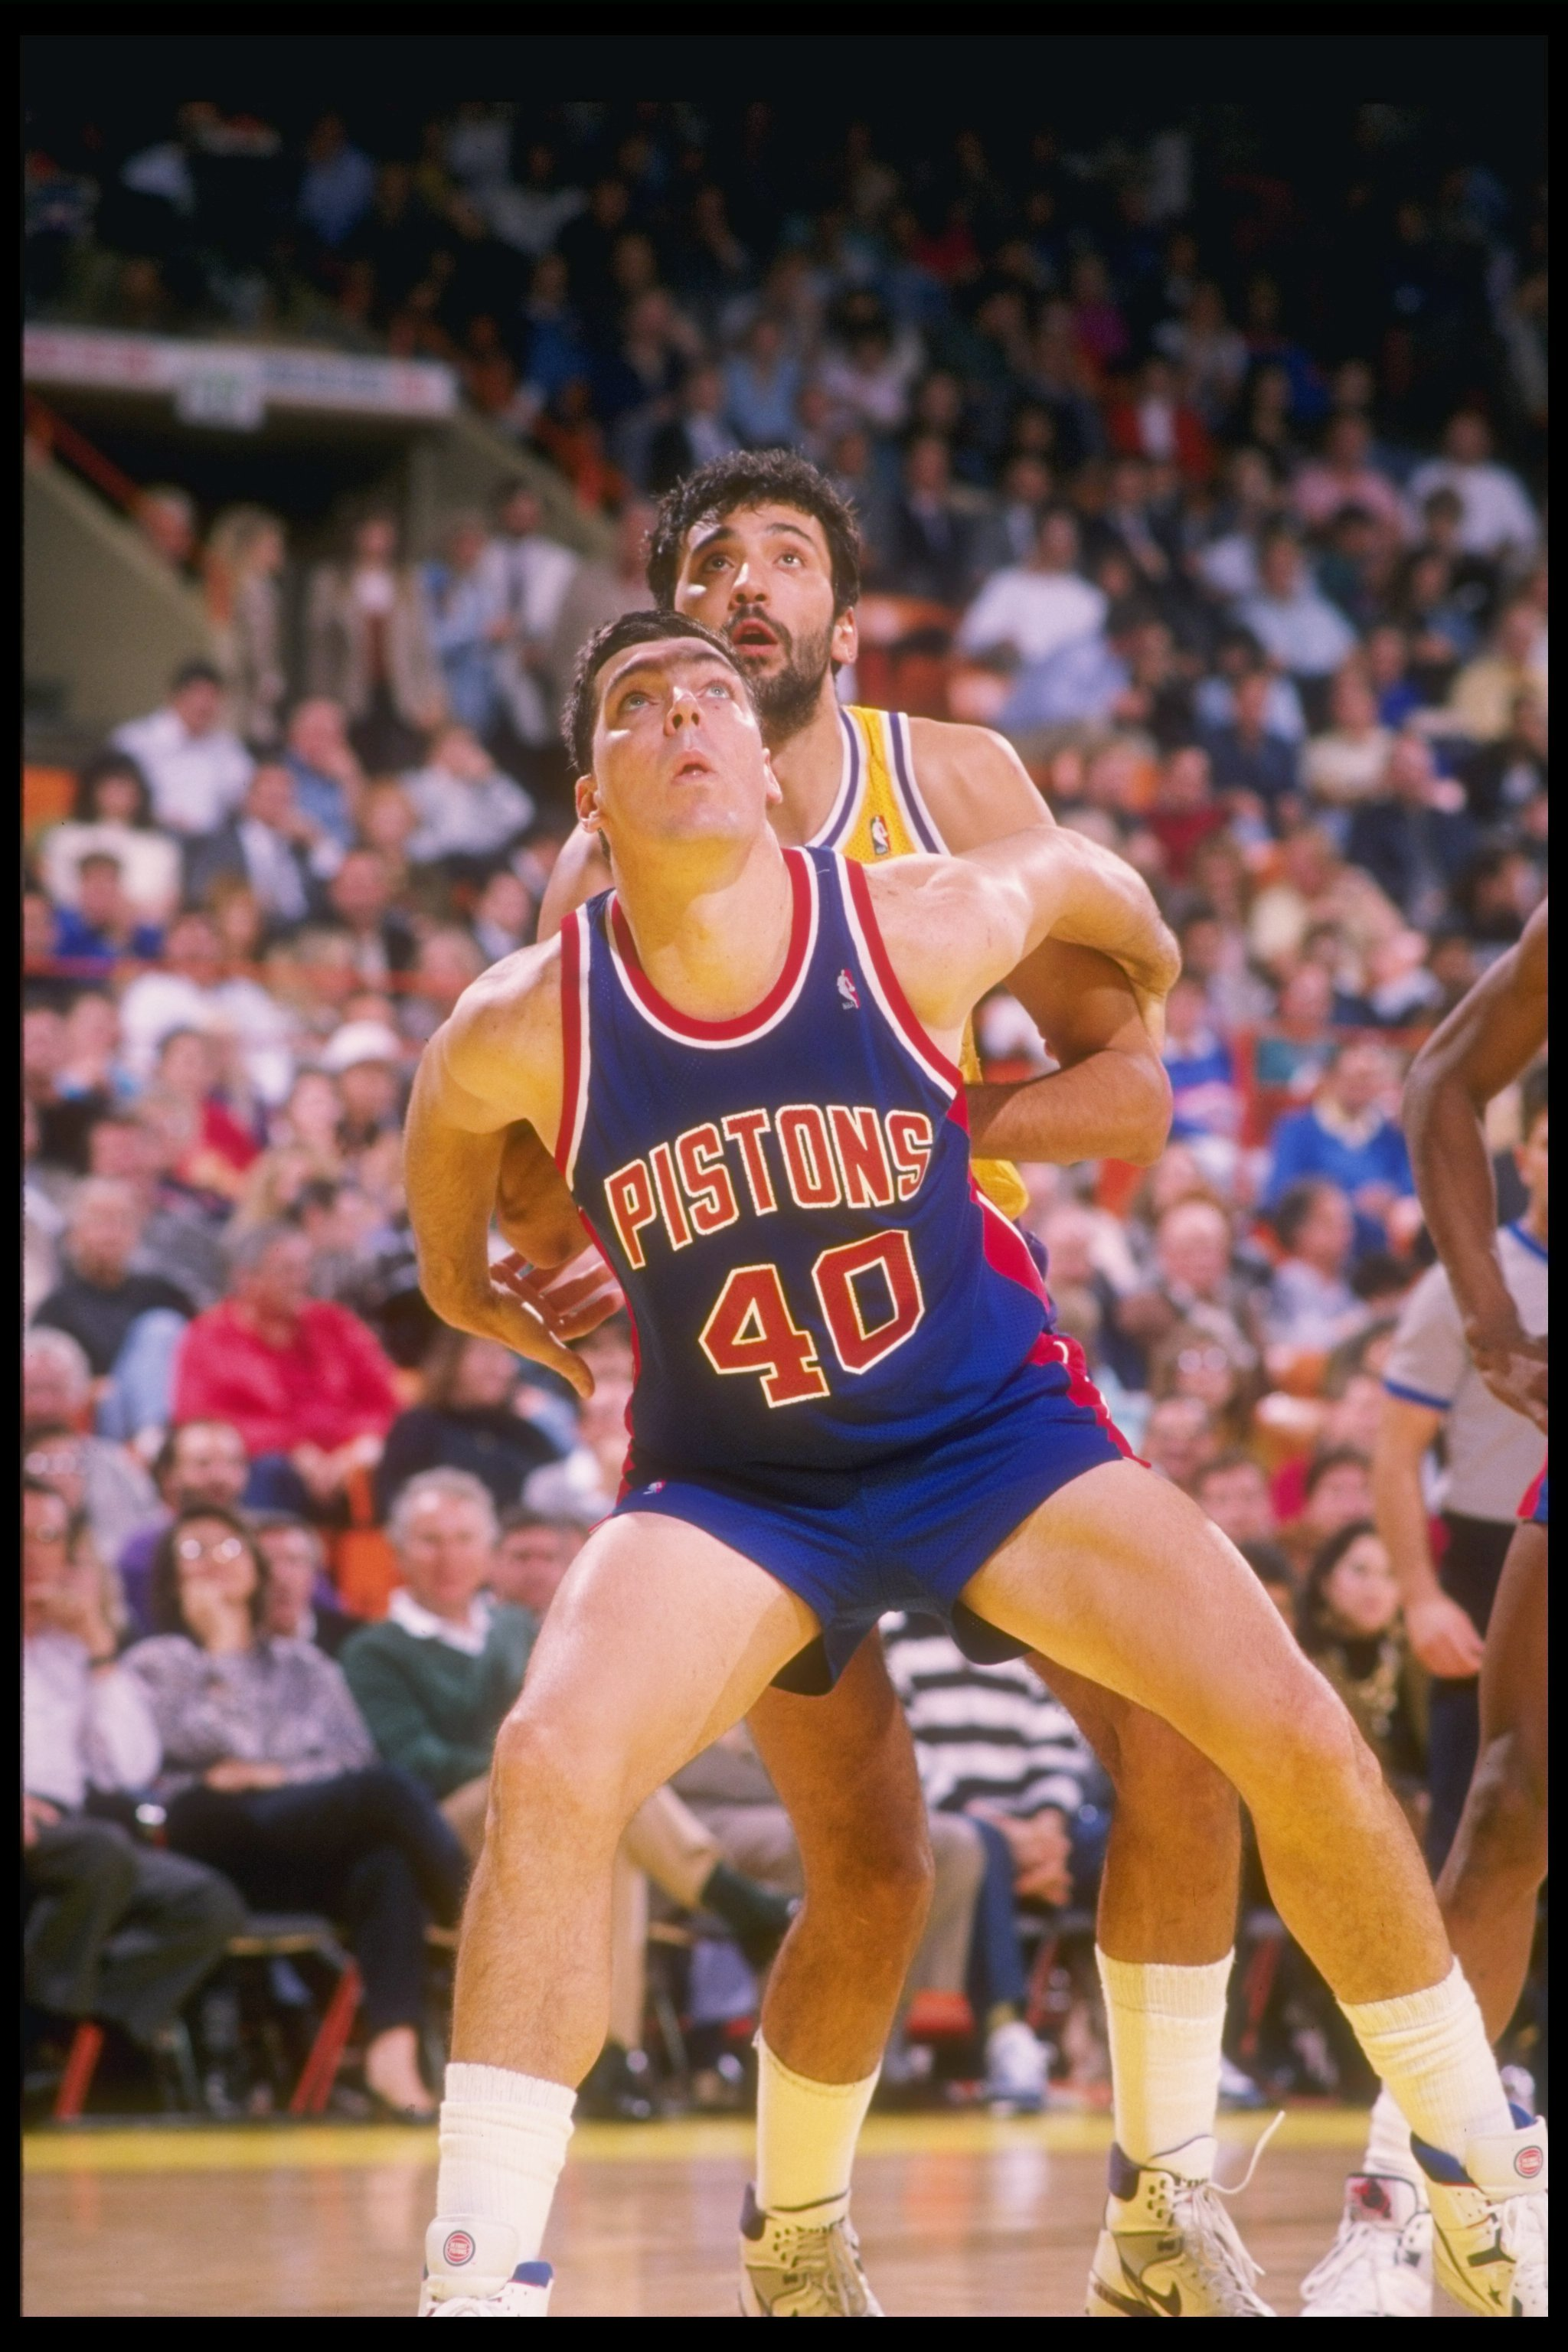 1989-1990:  Bill Laimbeer of the Detroit Pistons looks for the ball during a game. Mandatory Credit: Mike Powell  /Allsport Mandatory Credit: Mike Powell  /Allsport